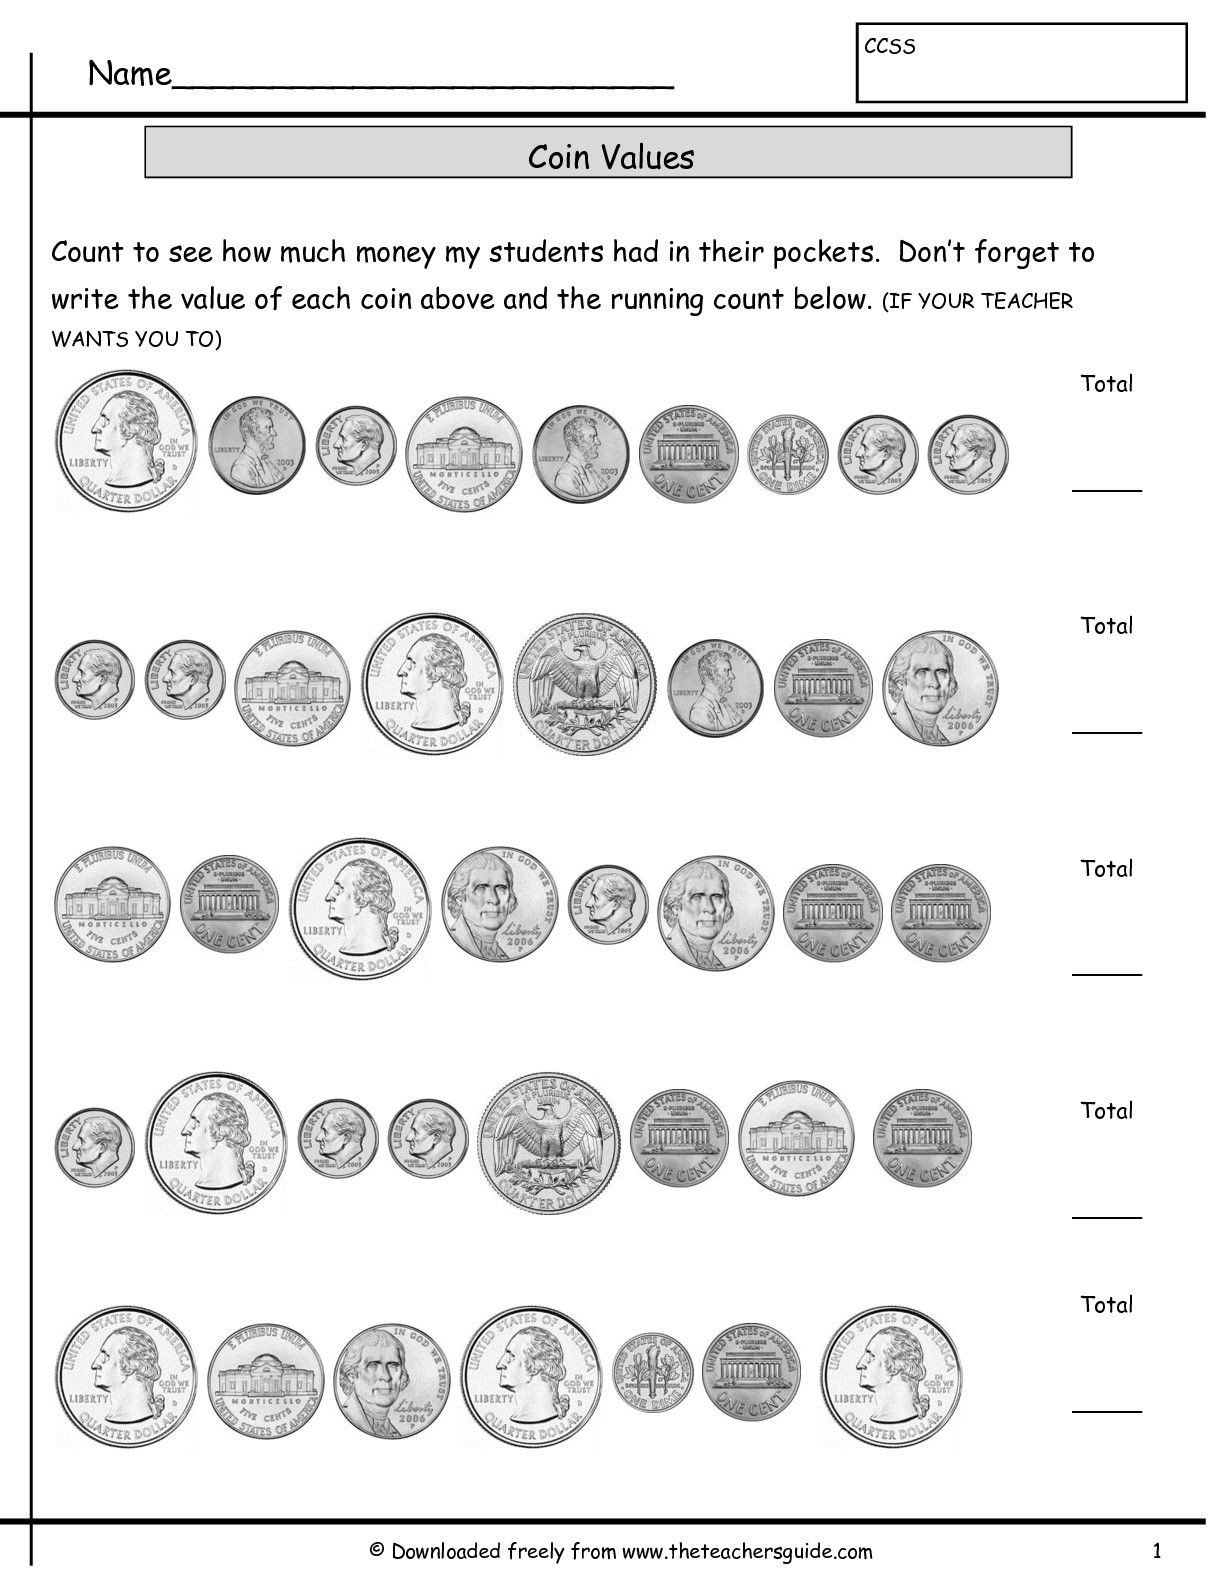 Counting Coins Worksheets First Grade Counting Coins Worksheets From the Teacher S Guide